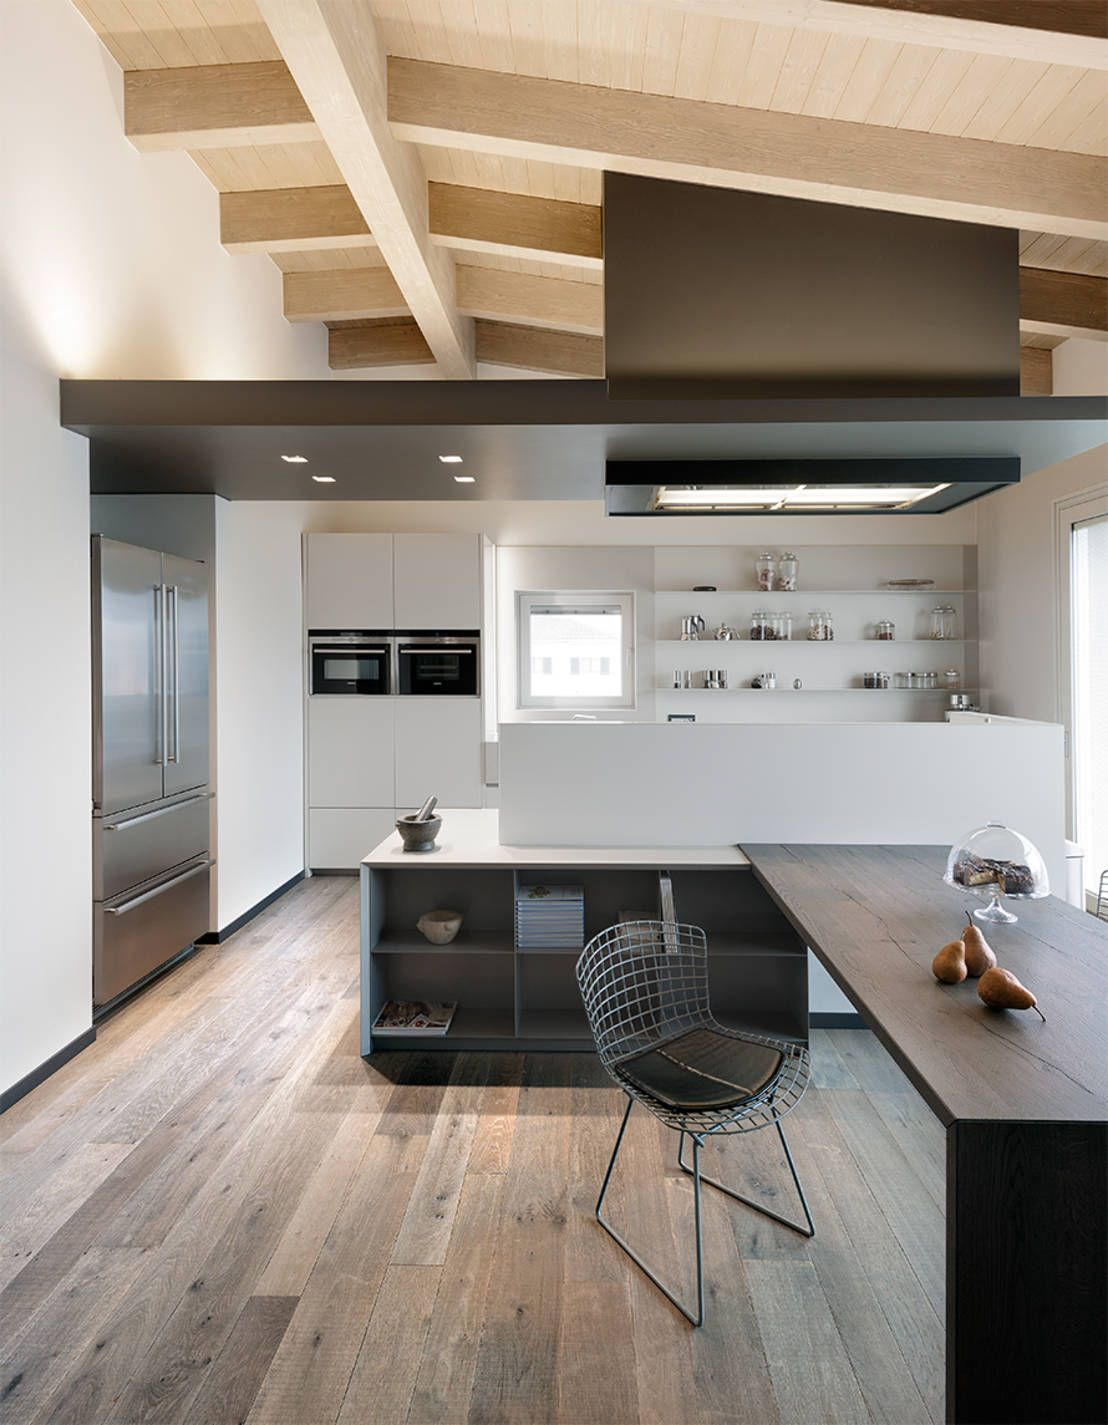 Top 10 Cucine moderne da sogno! | Interiors, Lofts and Kitchens